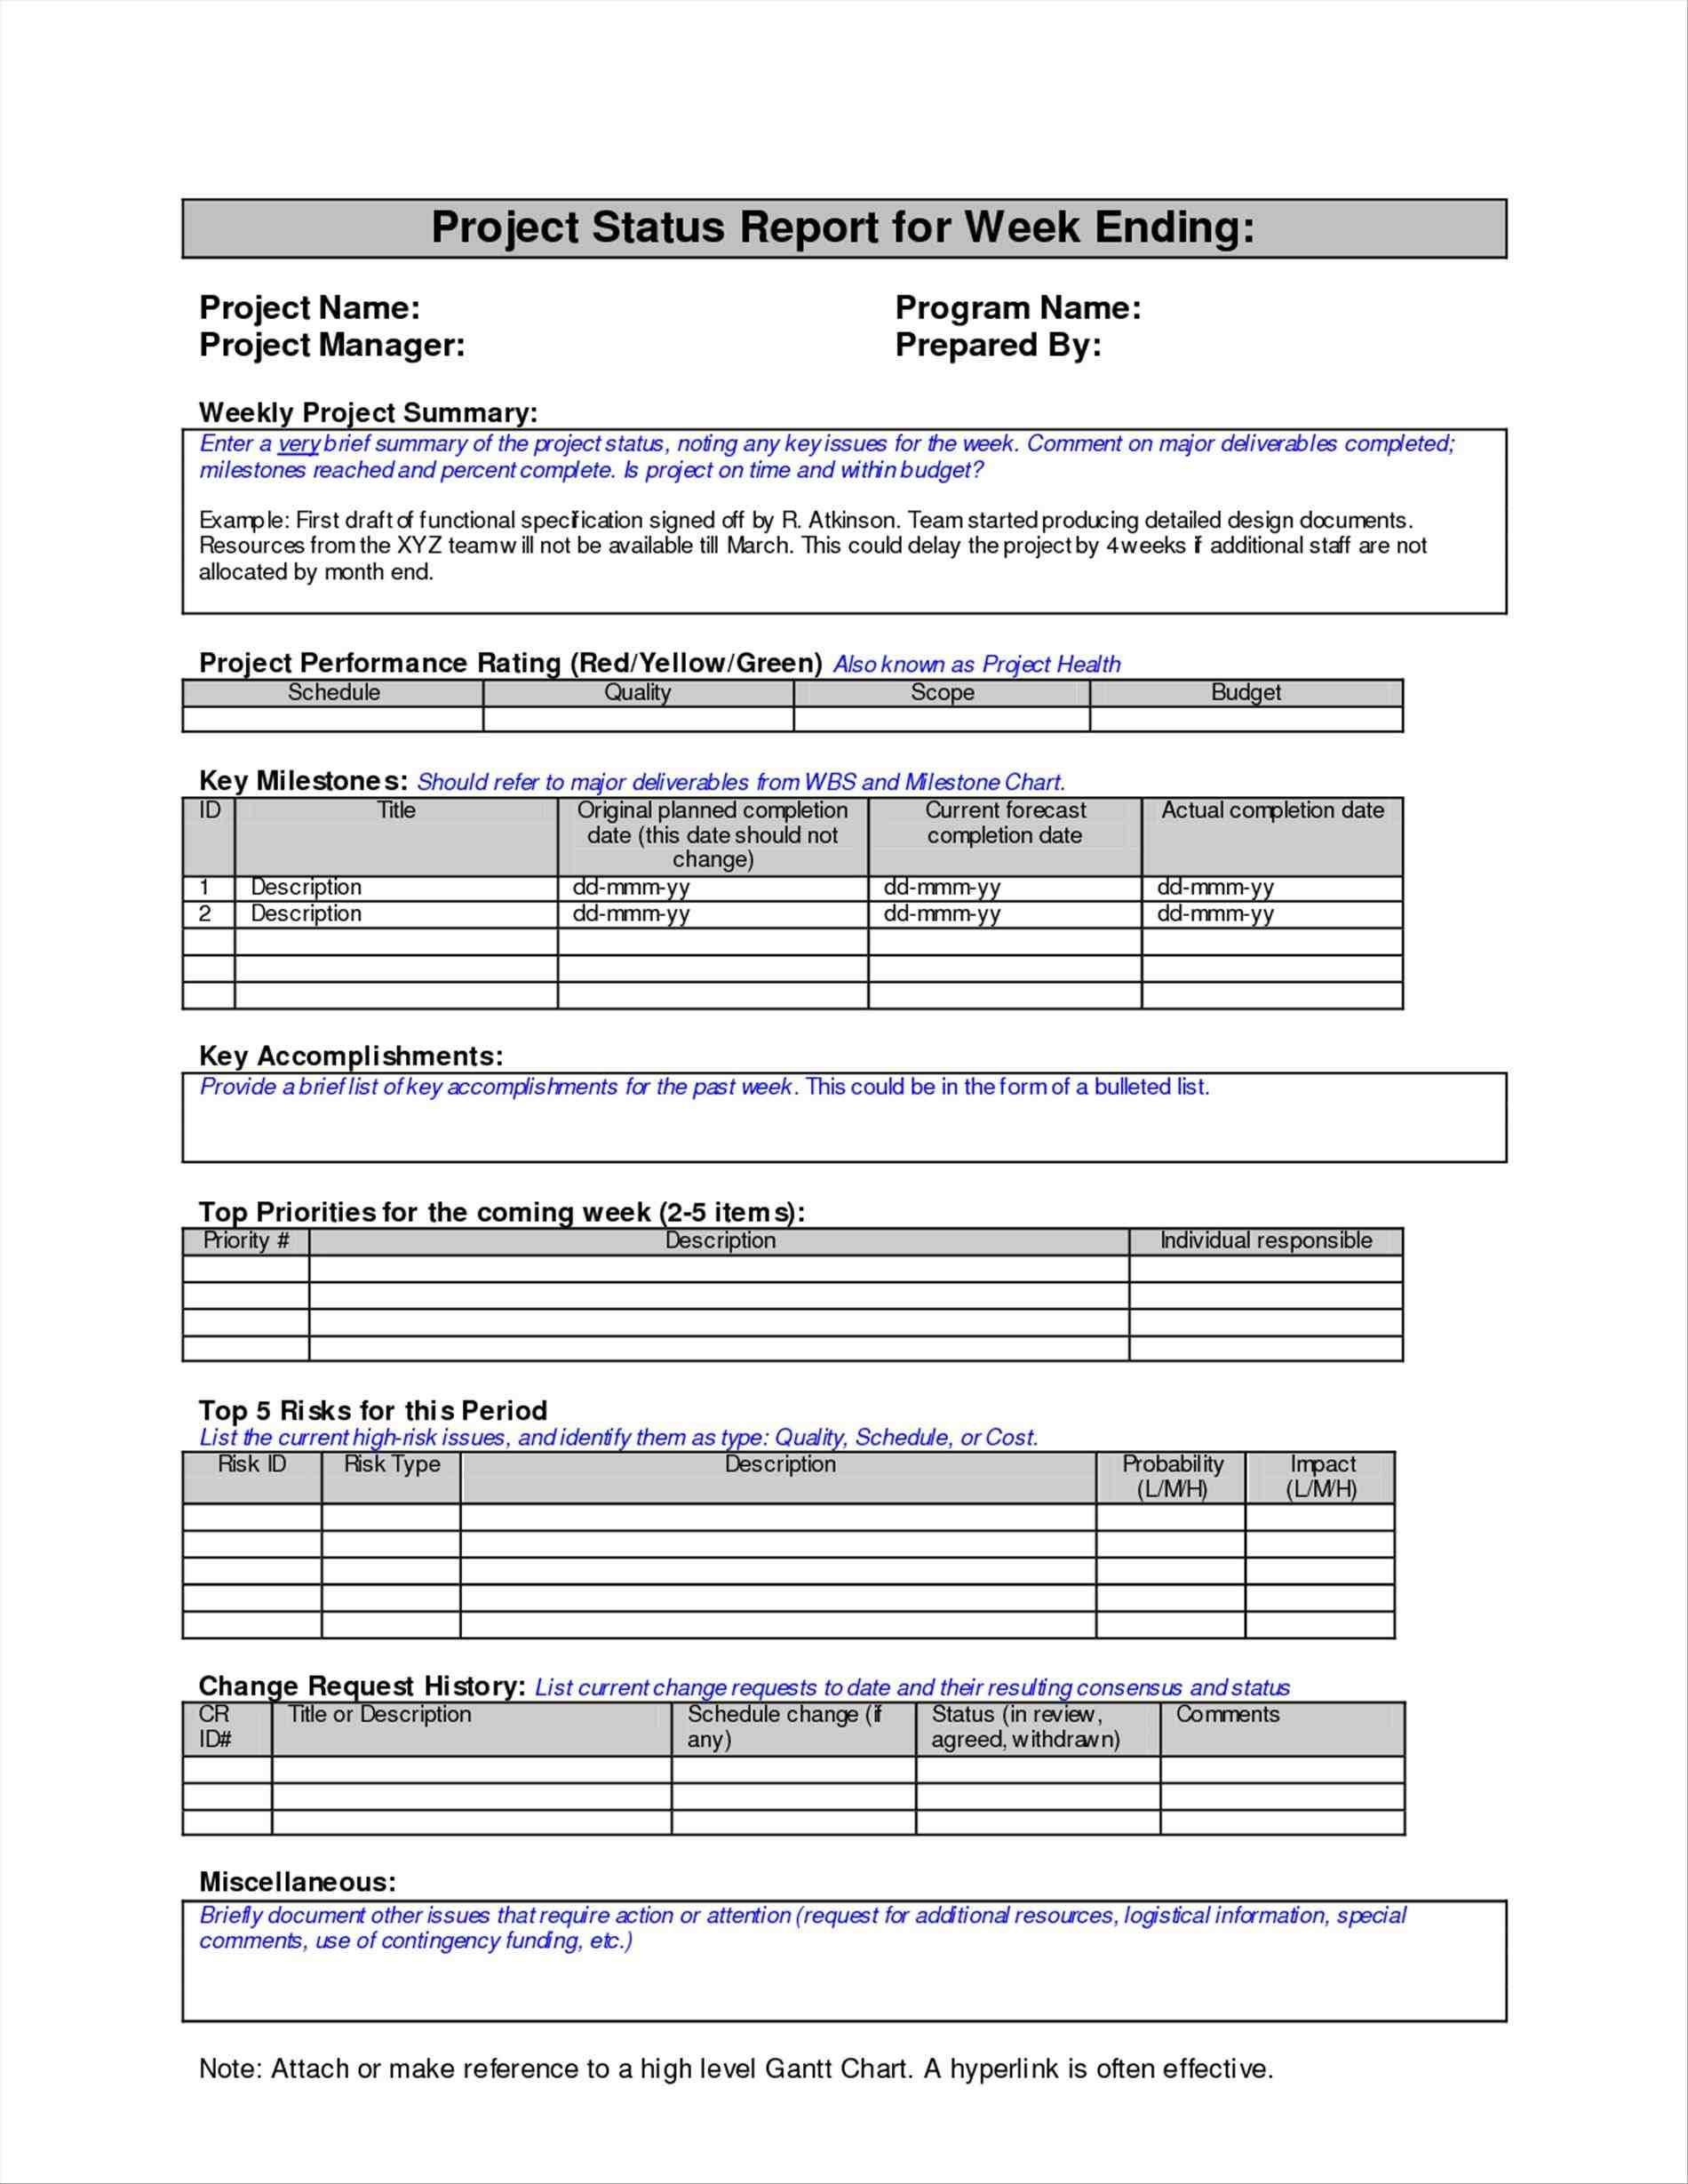 Interior Design Project Timeline  Project Timeline  Project Status Within Business Review Report Template